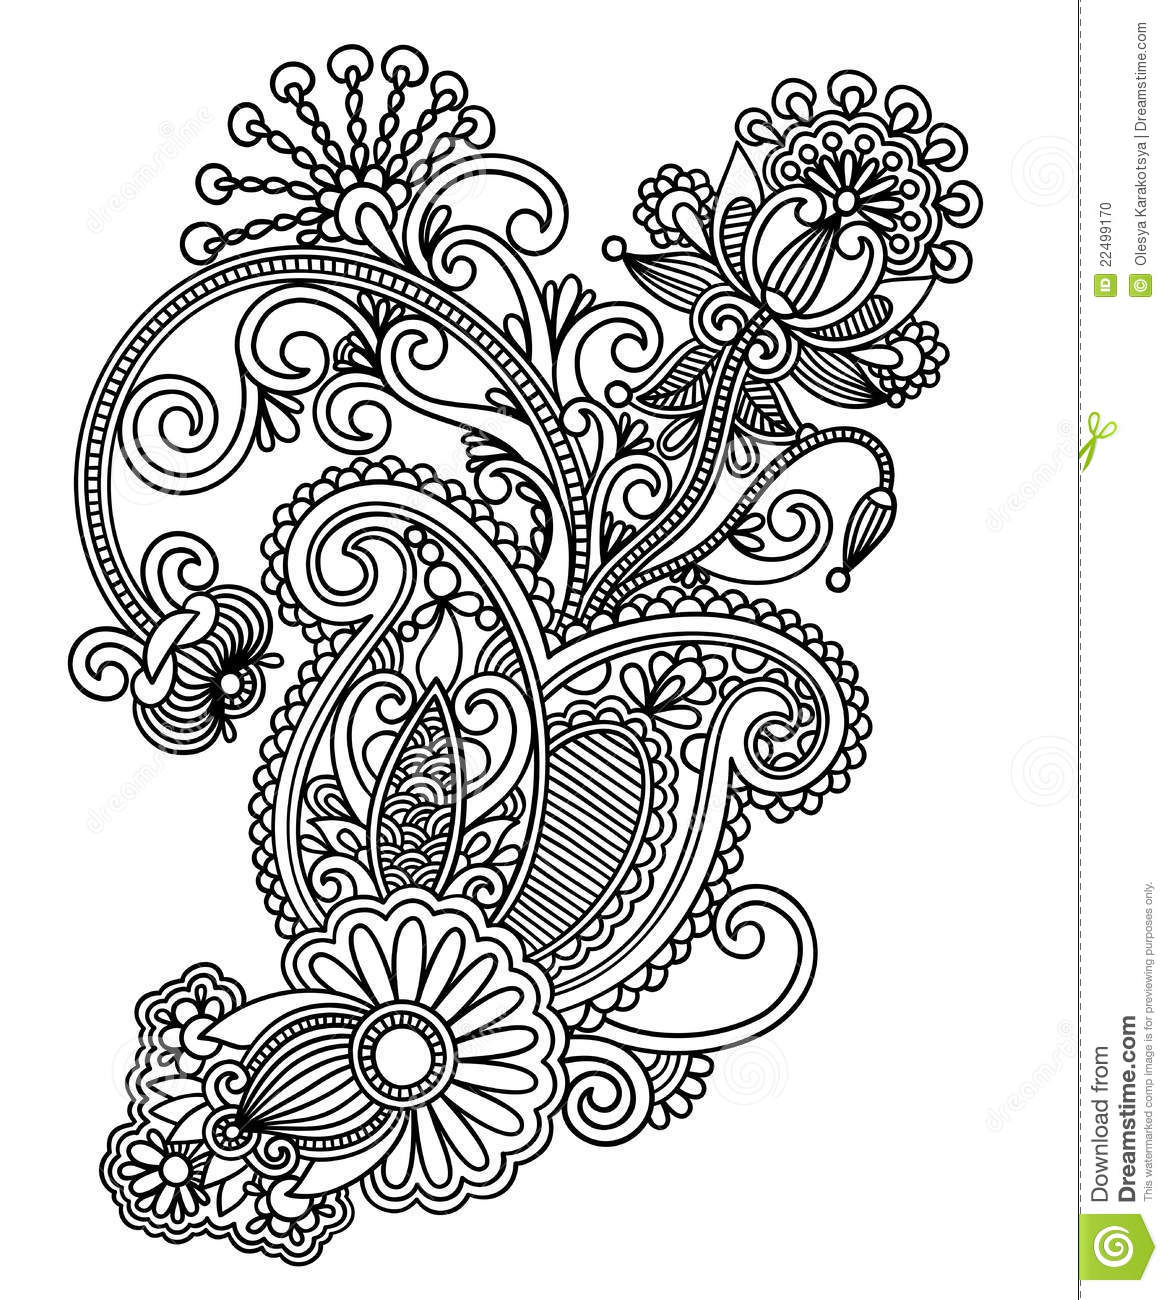 Line Art Poster Design : Line art ornate flower design stock photo image